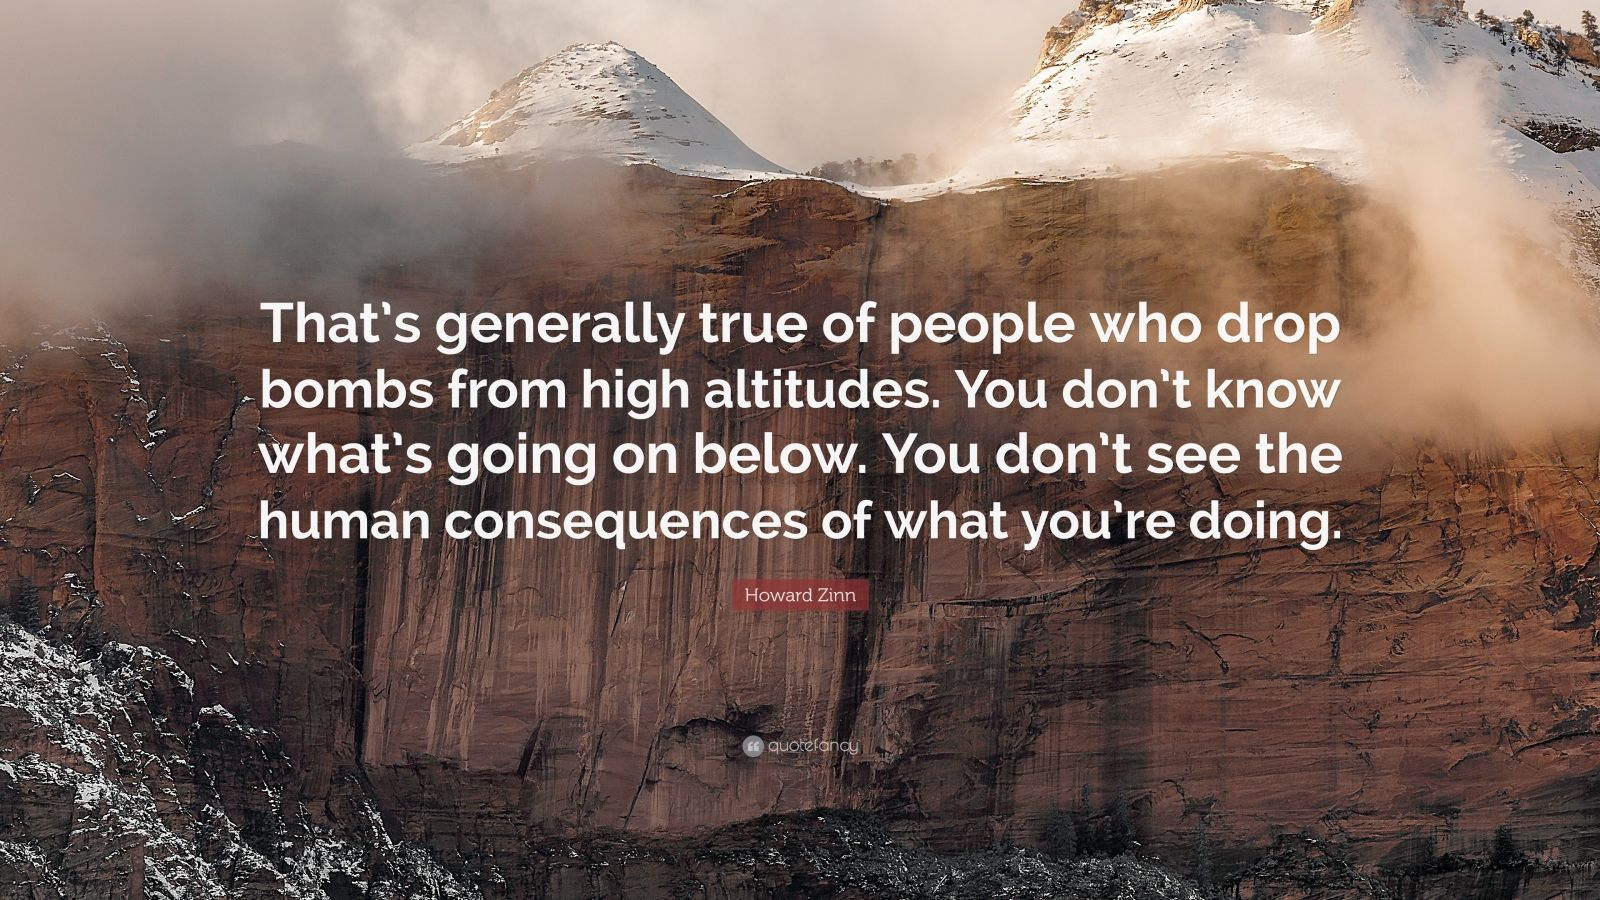 """Howard Zinn Quote: """"That's generally true of people who drop bombs from high altitudes. You don't know what's going on below. You don't see the human consequences of what you're doing."""""""